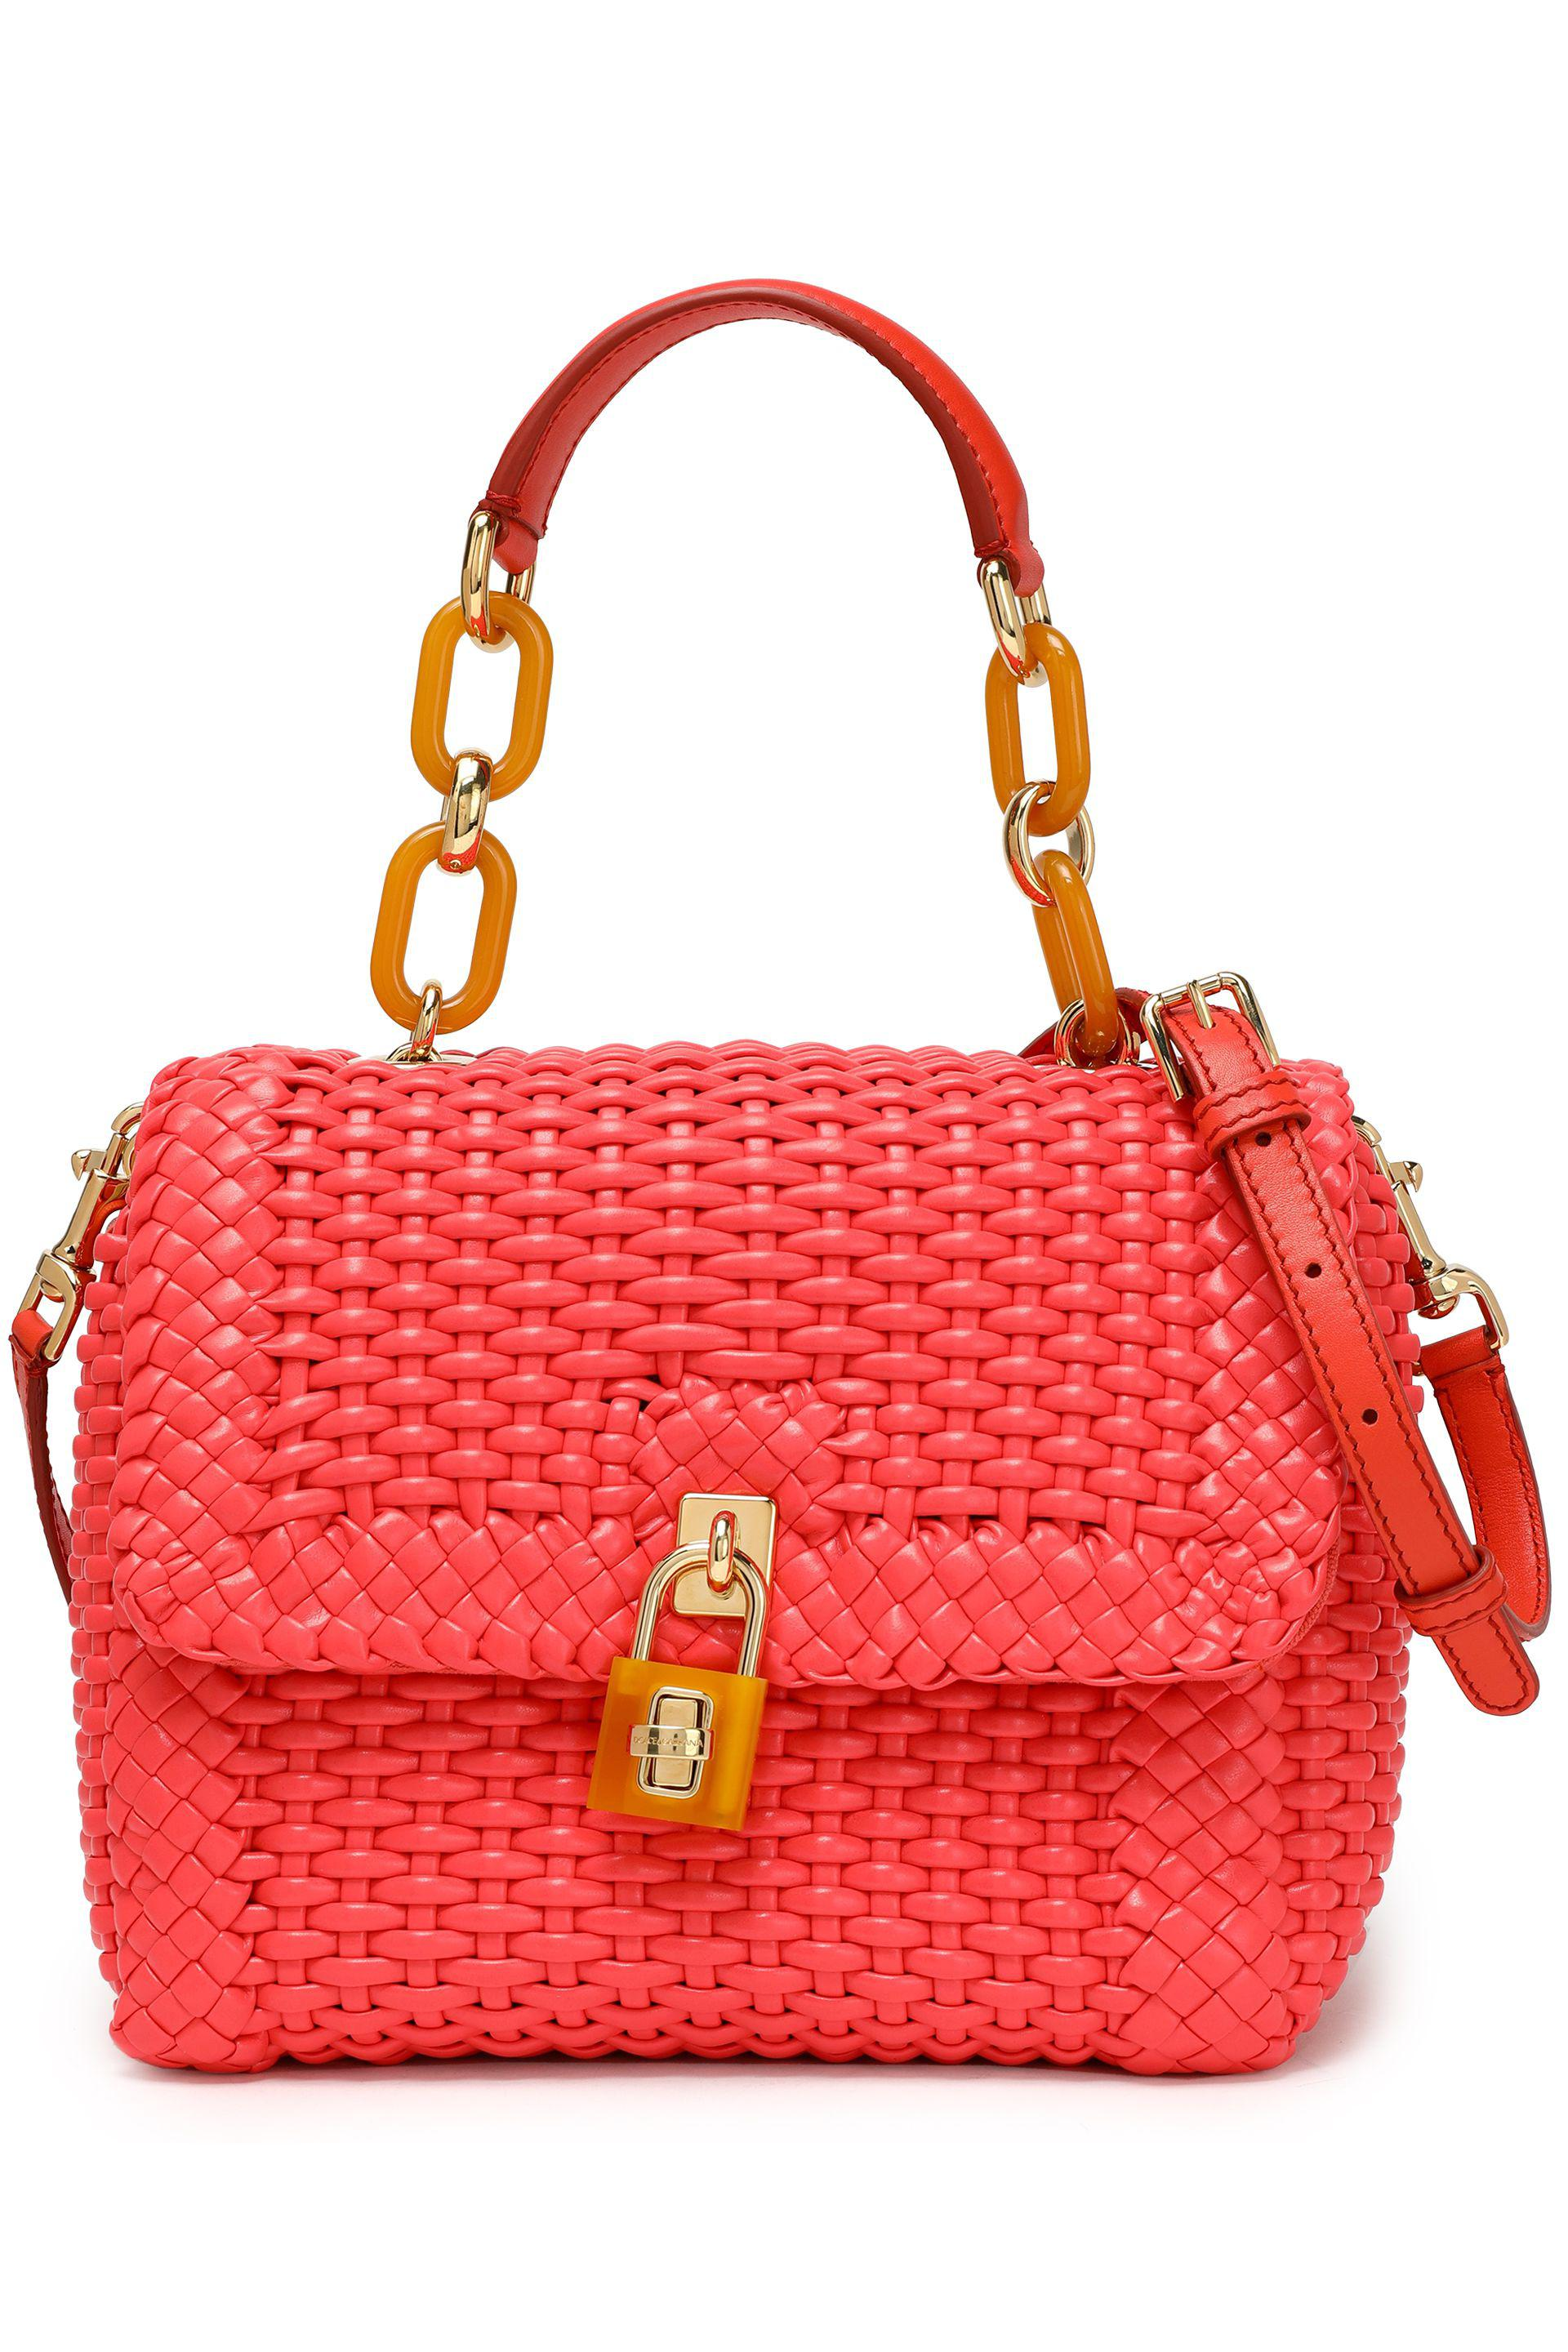 Dolce   Gabbana Miss Dolce Woven Leather Shoulder Bag in Red - Lyst 5db7c4ddfb8e3